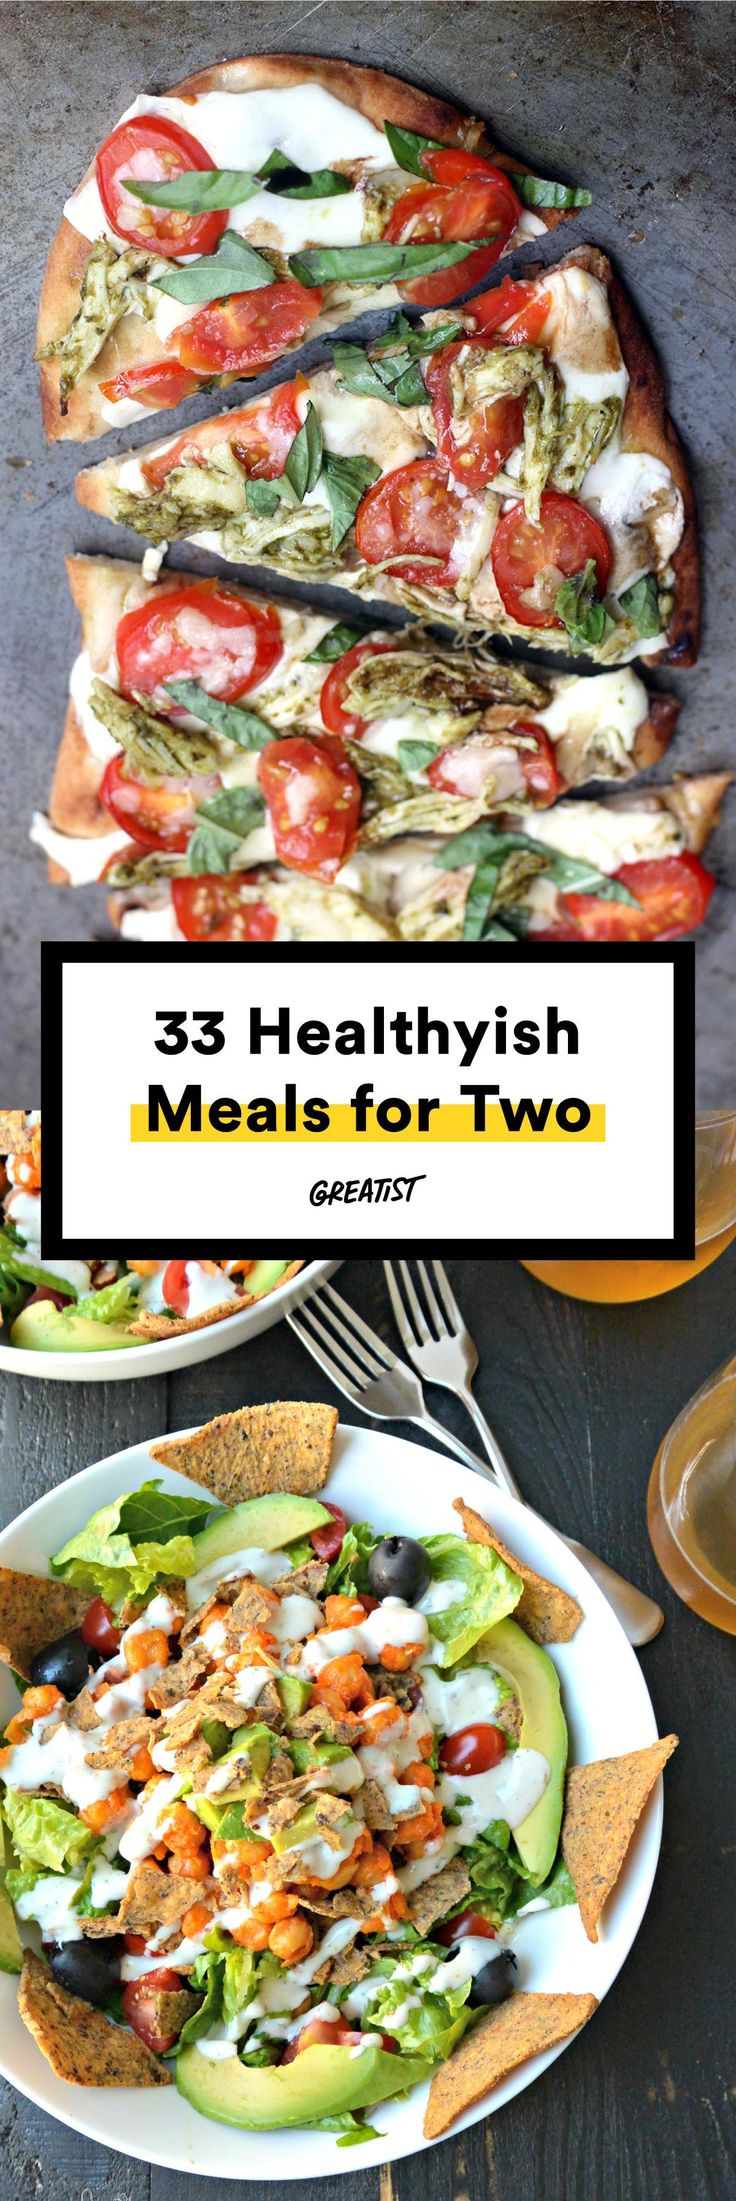 Best 25 Cooking for two ideas on Pinterest Meals for two